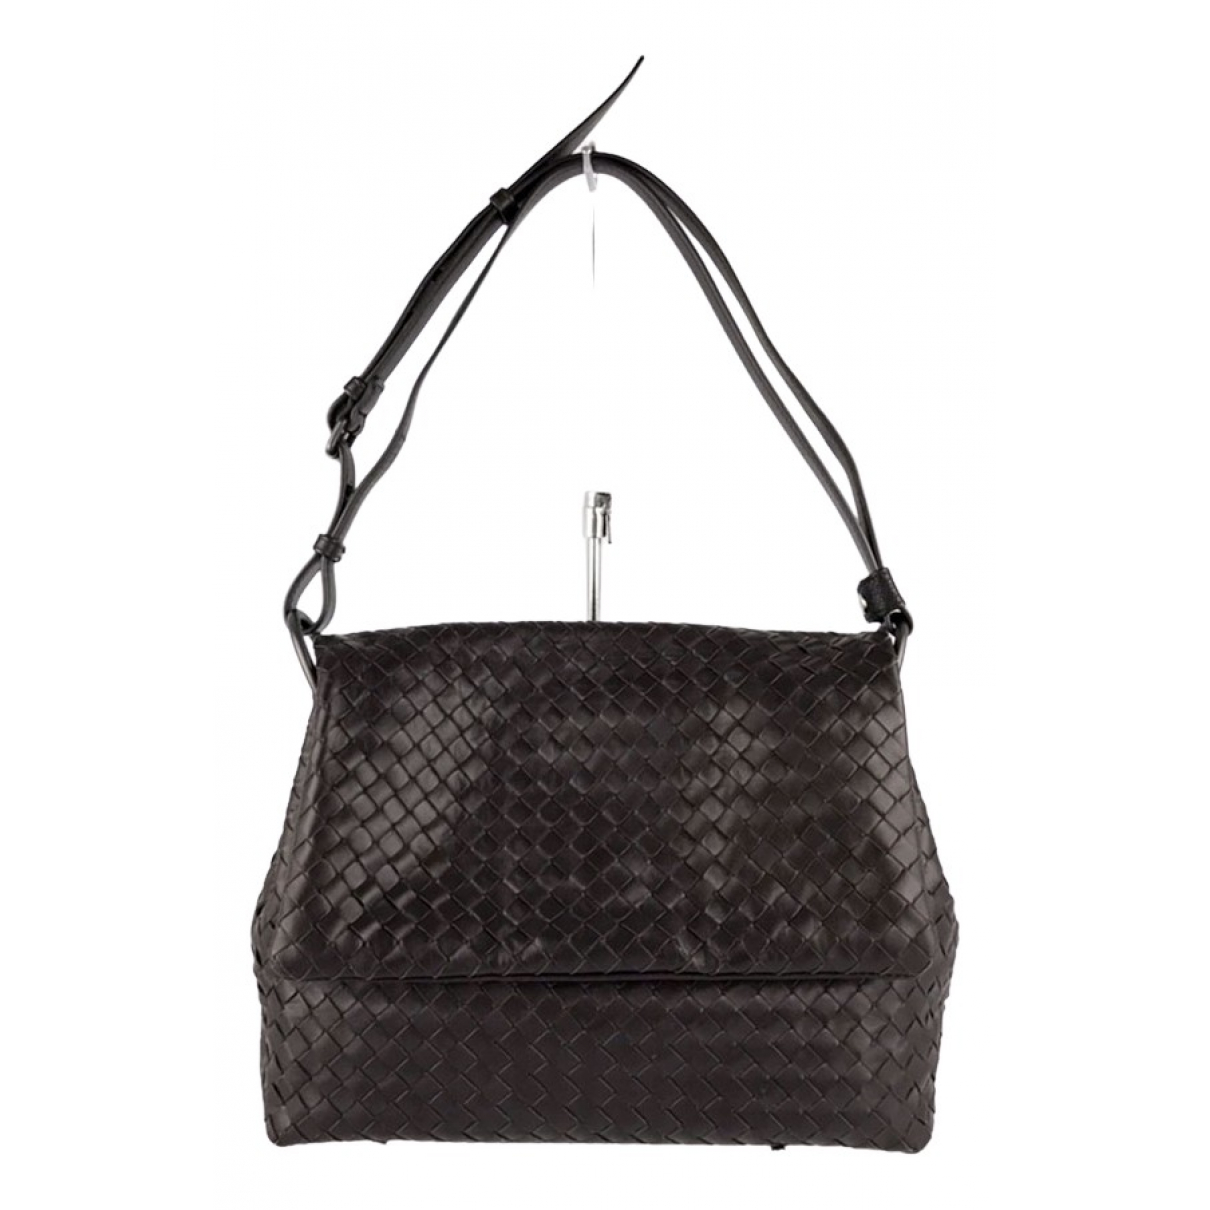 Bottega Veneta \N Brown Leather handbag for Women \N